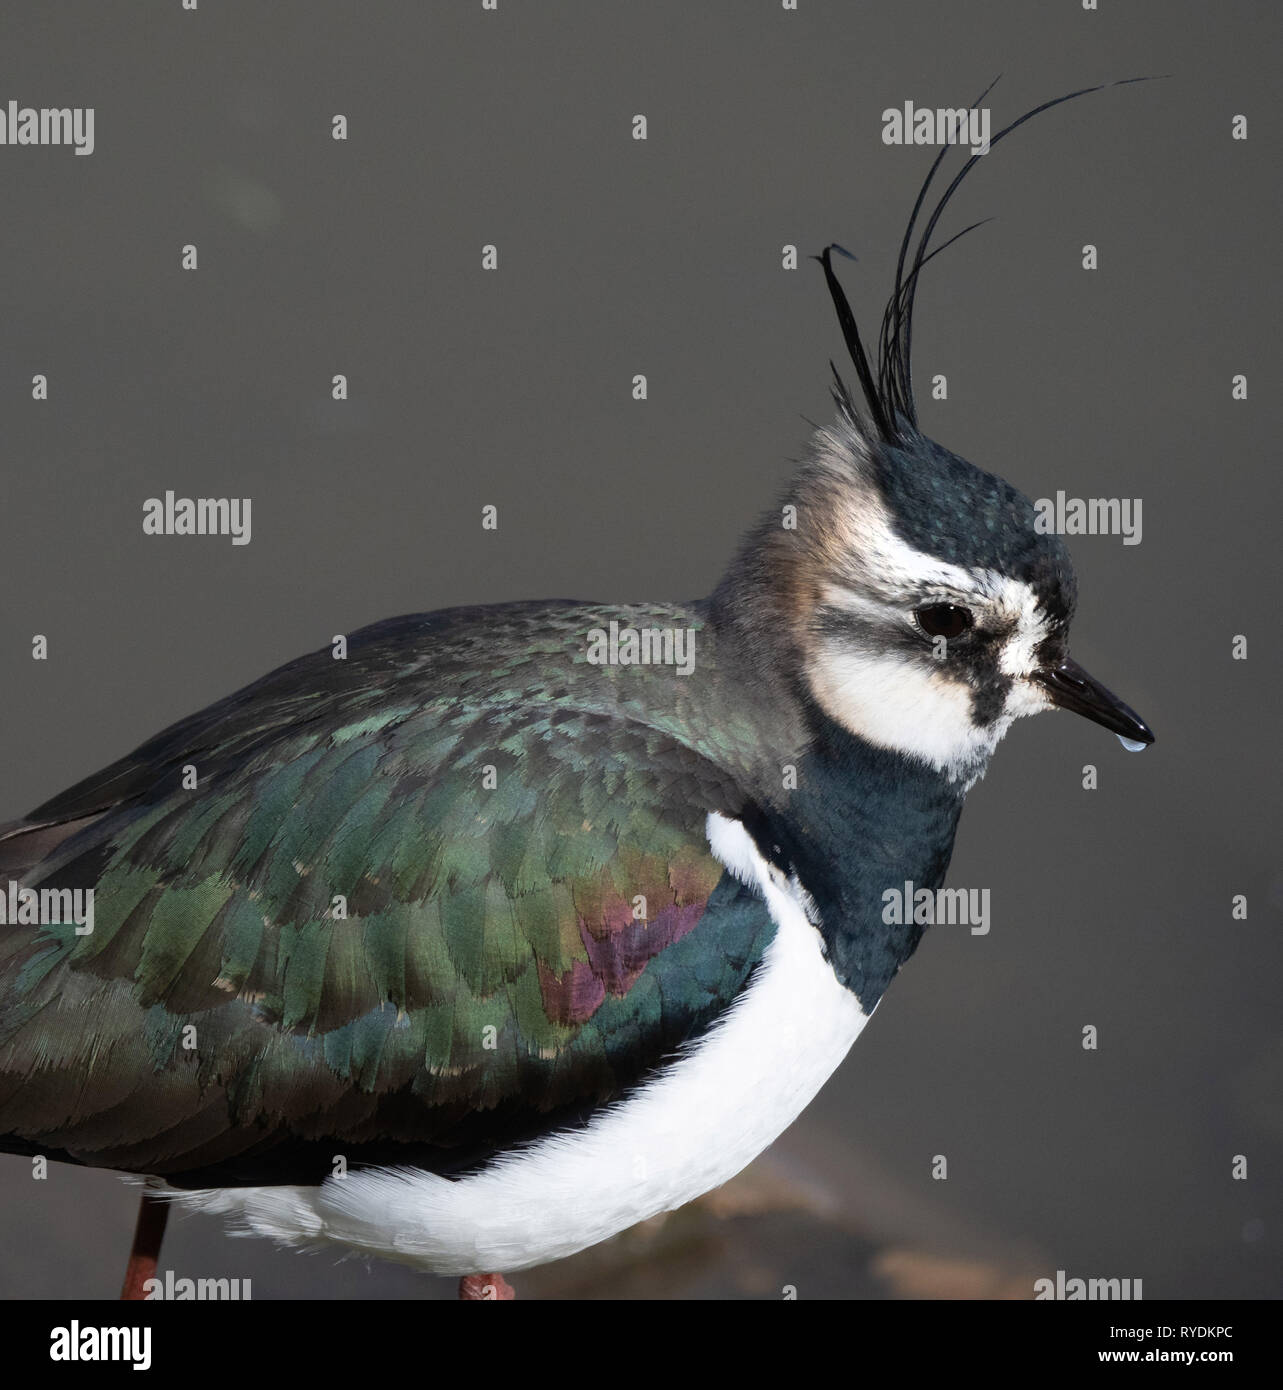 Close up view of lapwing peewit or green plover Vanellus vanellus showing irridescent green feathers on back and long crest feathers  - Somerset UK Stock Photo